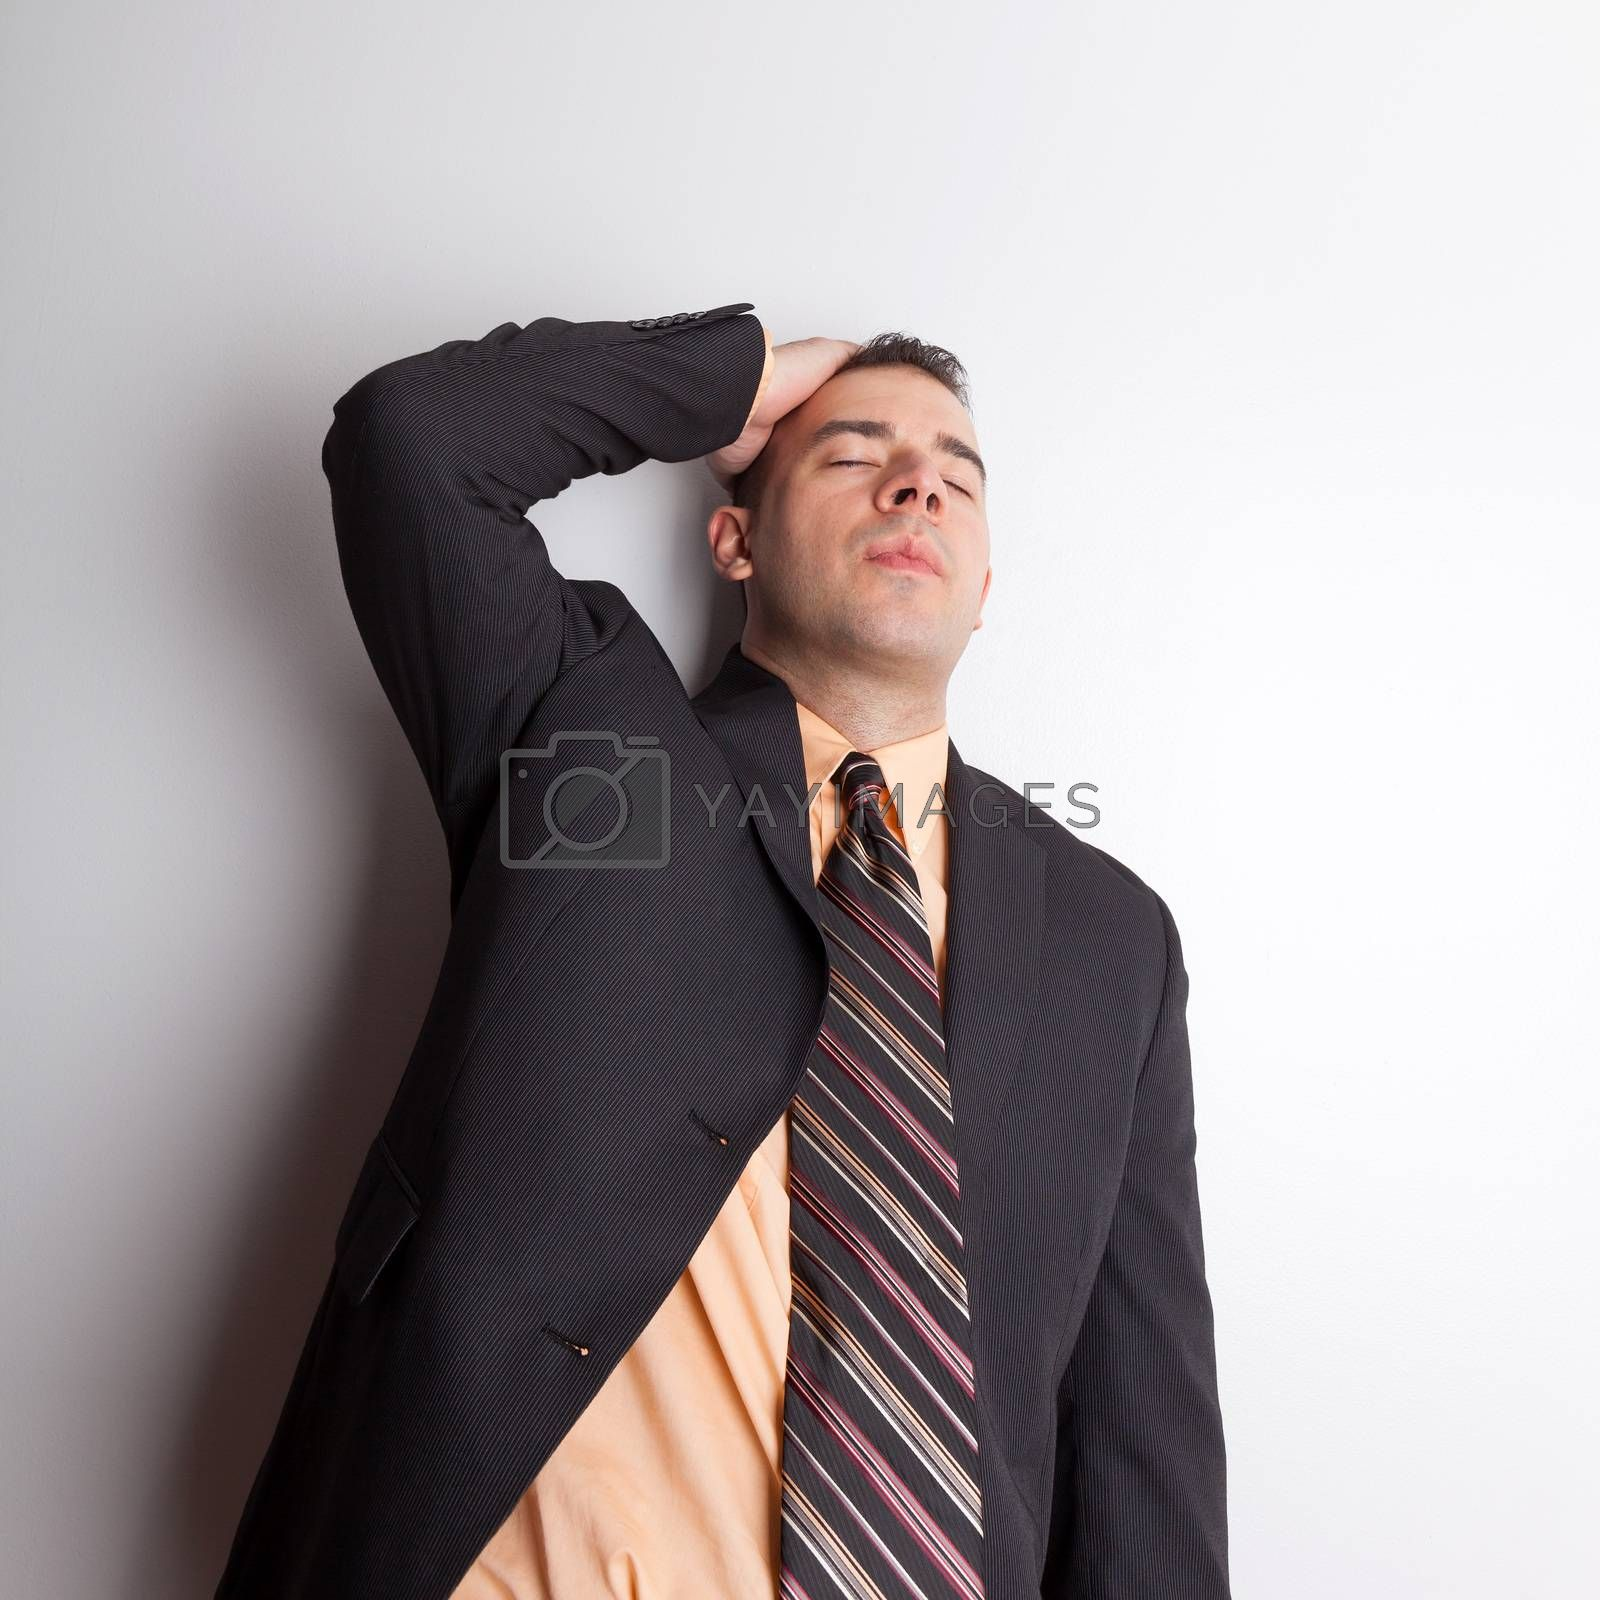 Stressed out business man isolated over a silver background worried or depressed about finances and difficult economic times.